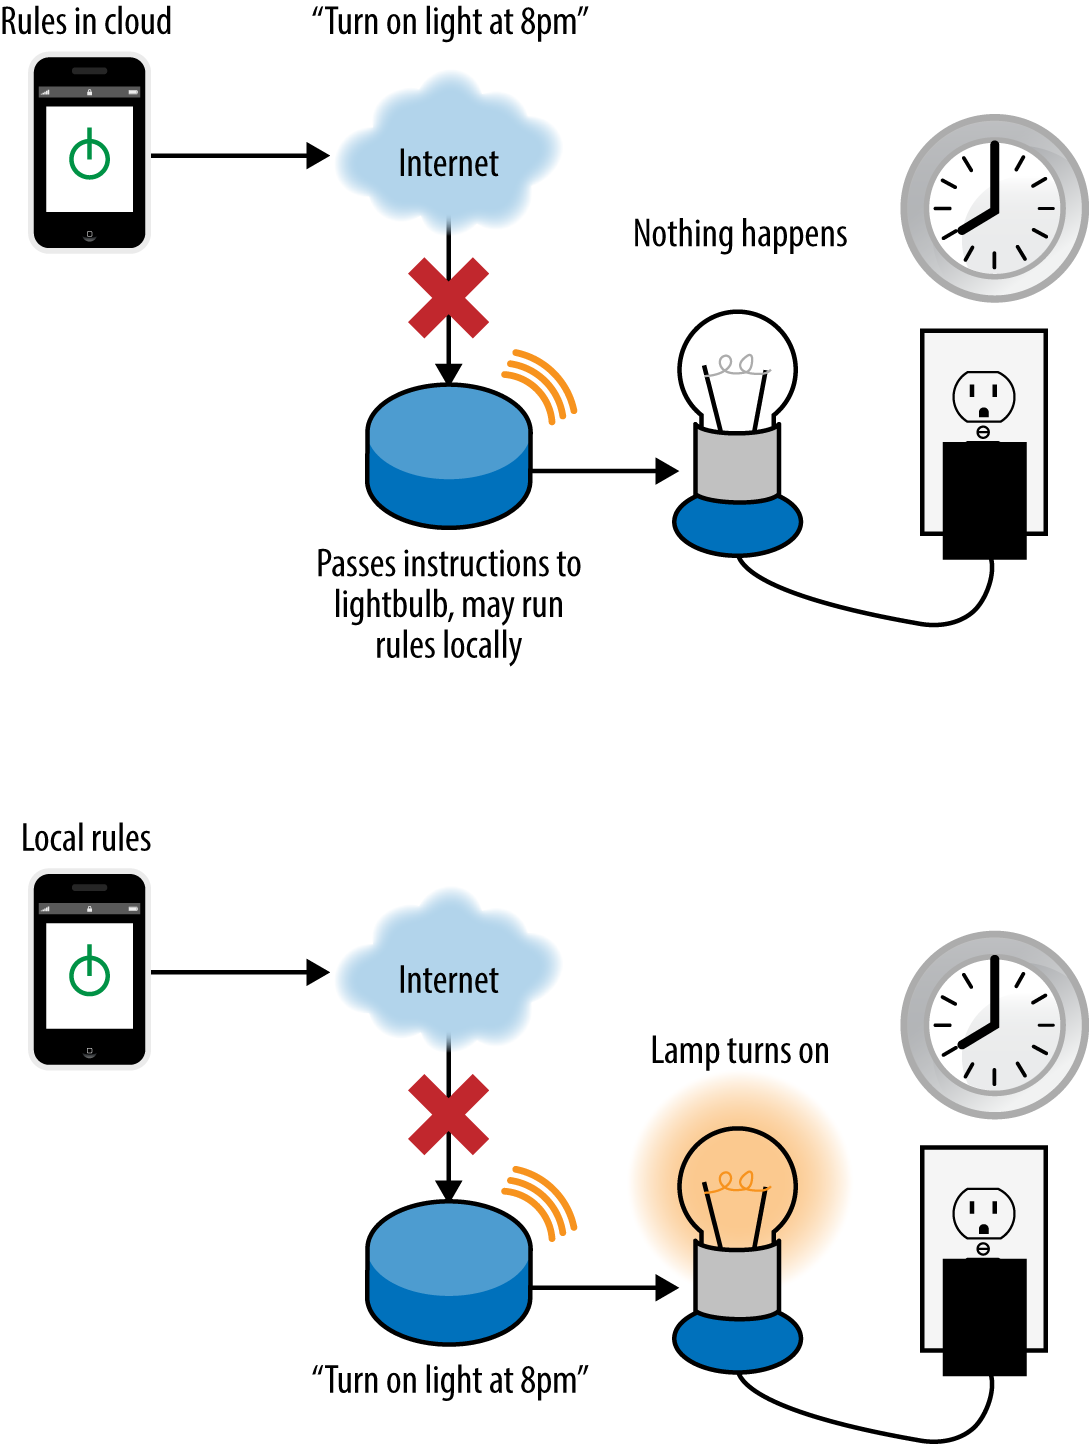 Connected home systems often offer automation rules, such as turning a light off at a specific time. If these are stored in the cloud, they will not run if the home Internet connection goes down. If they are stored locally, they will continue to run, but the user won't be able to see this or control devices remotely.